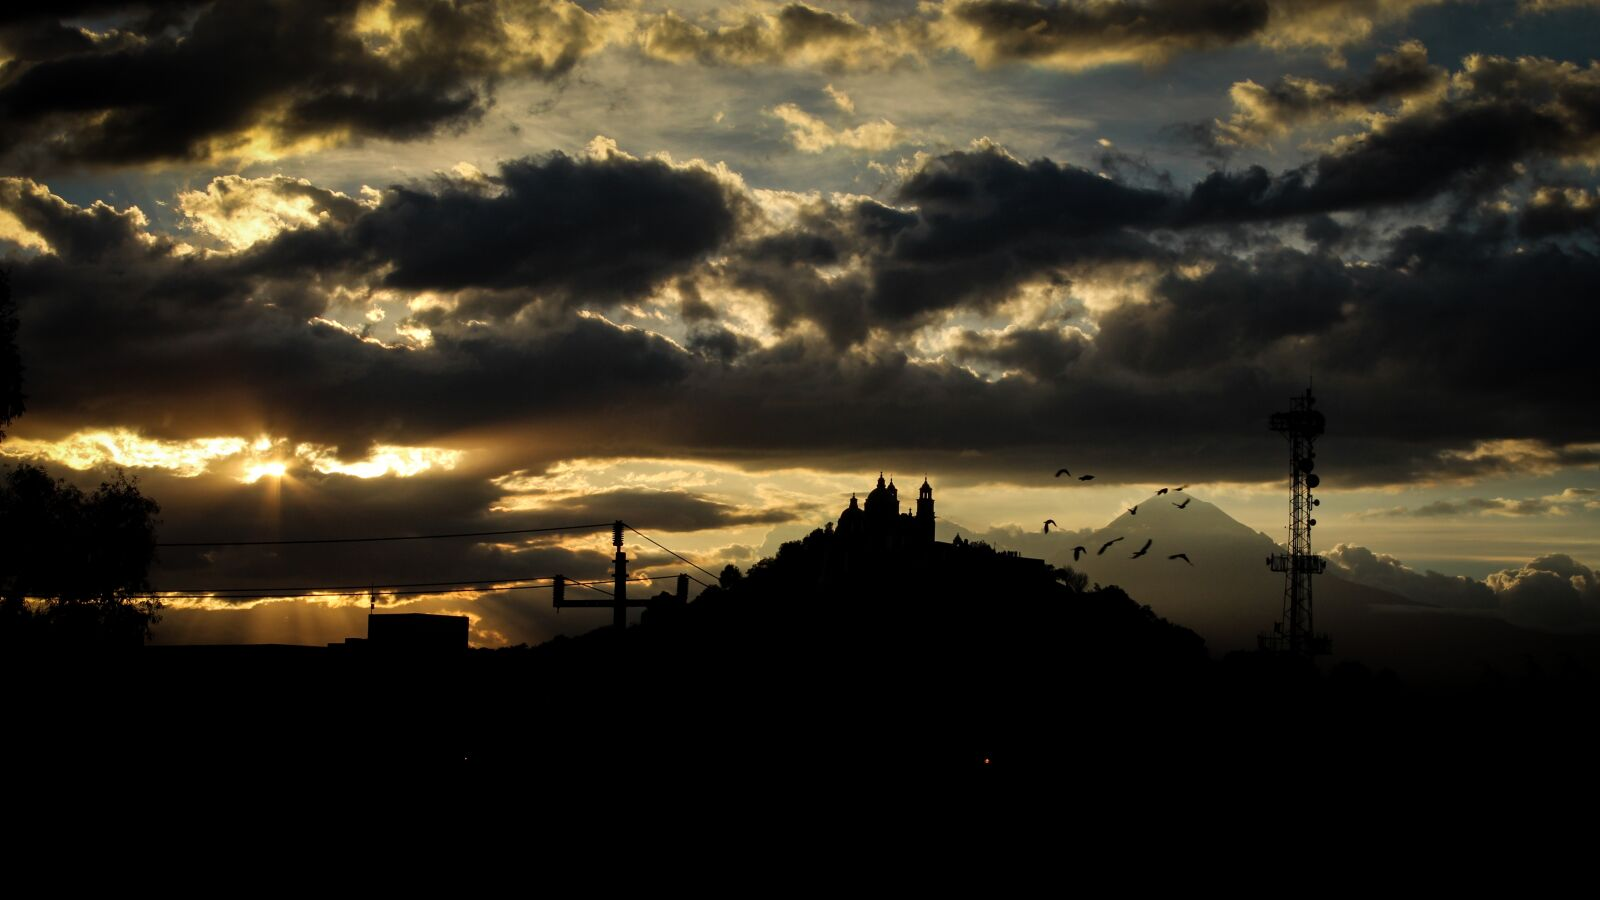 """Canon EOS 600D (Rebel EOS T3i / EOS Kiss X5) sample photo. """"Landscape, sunset, clouds"""" photography"""